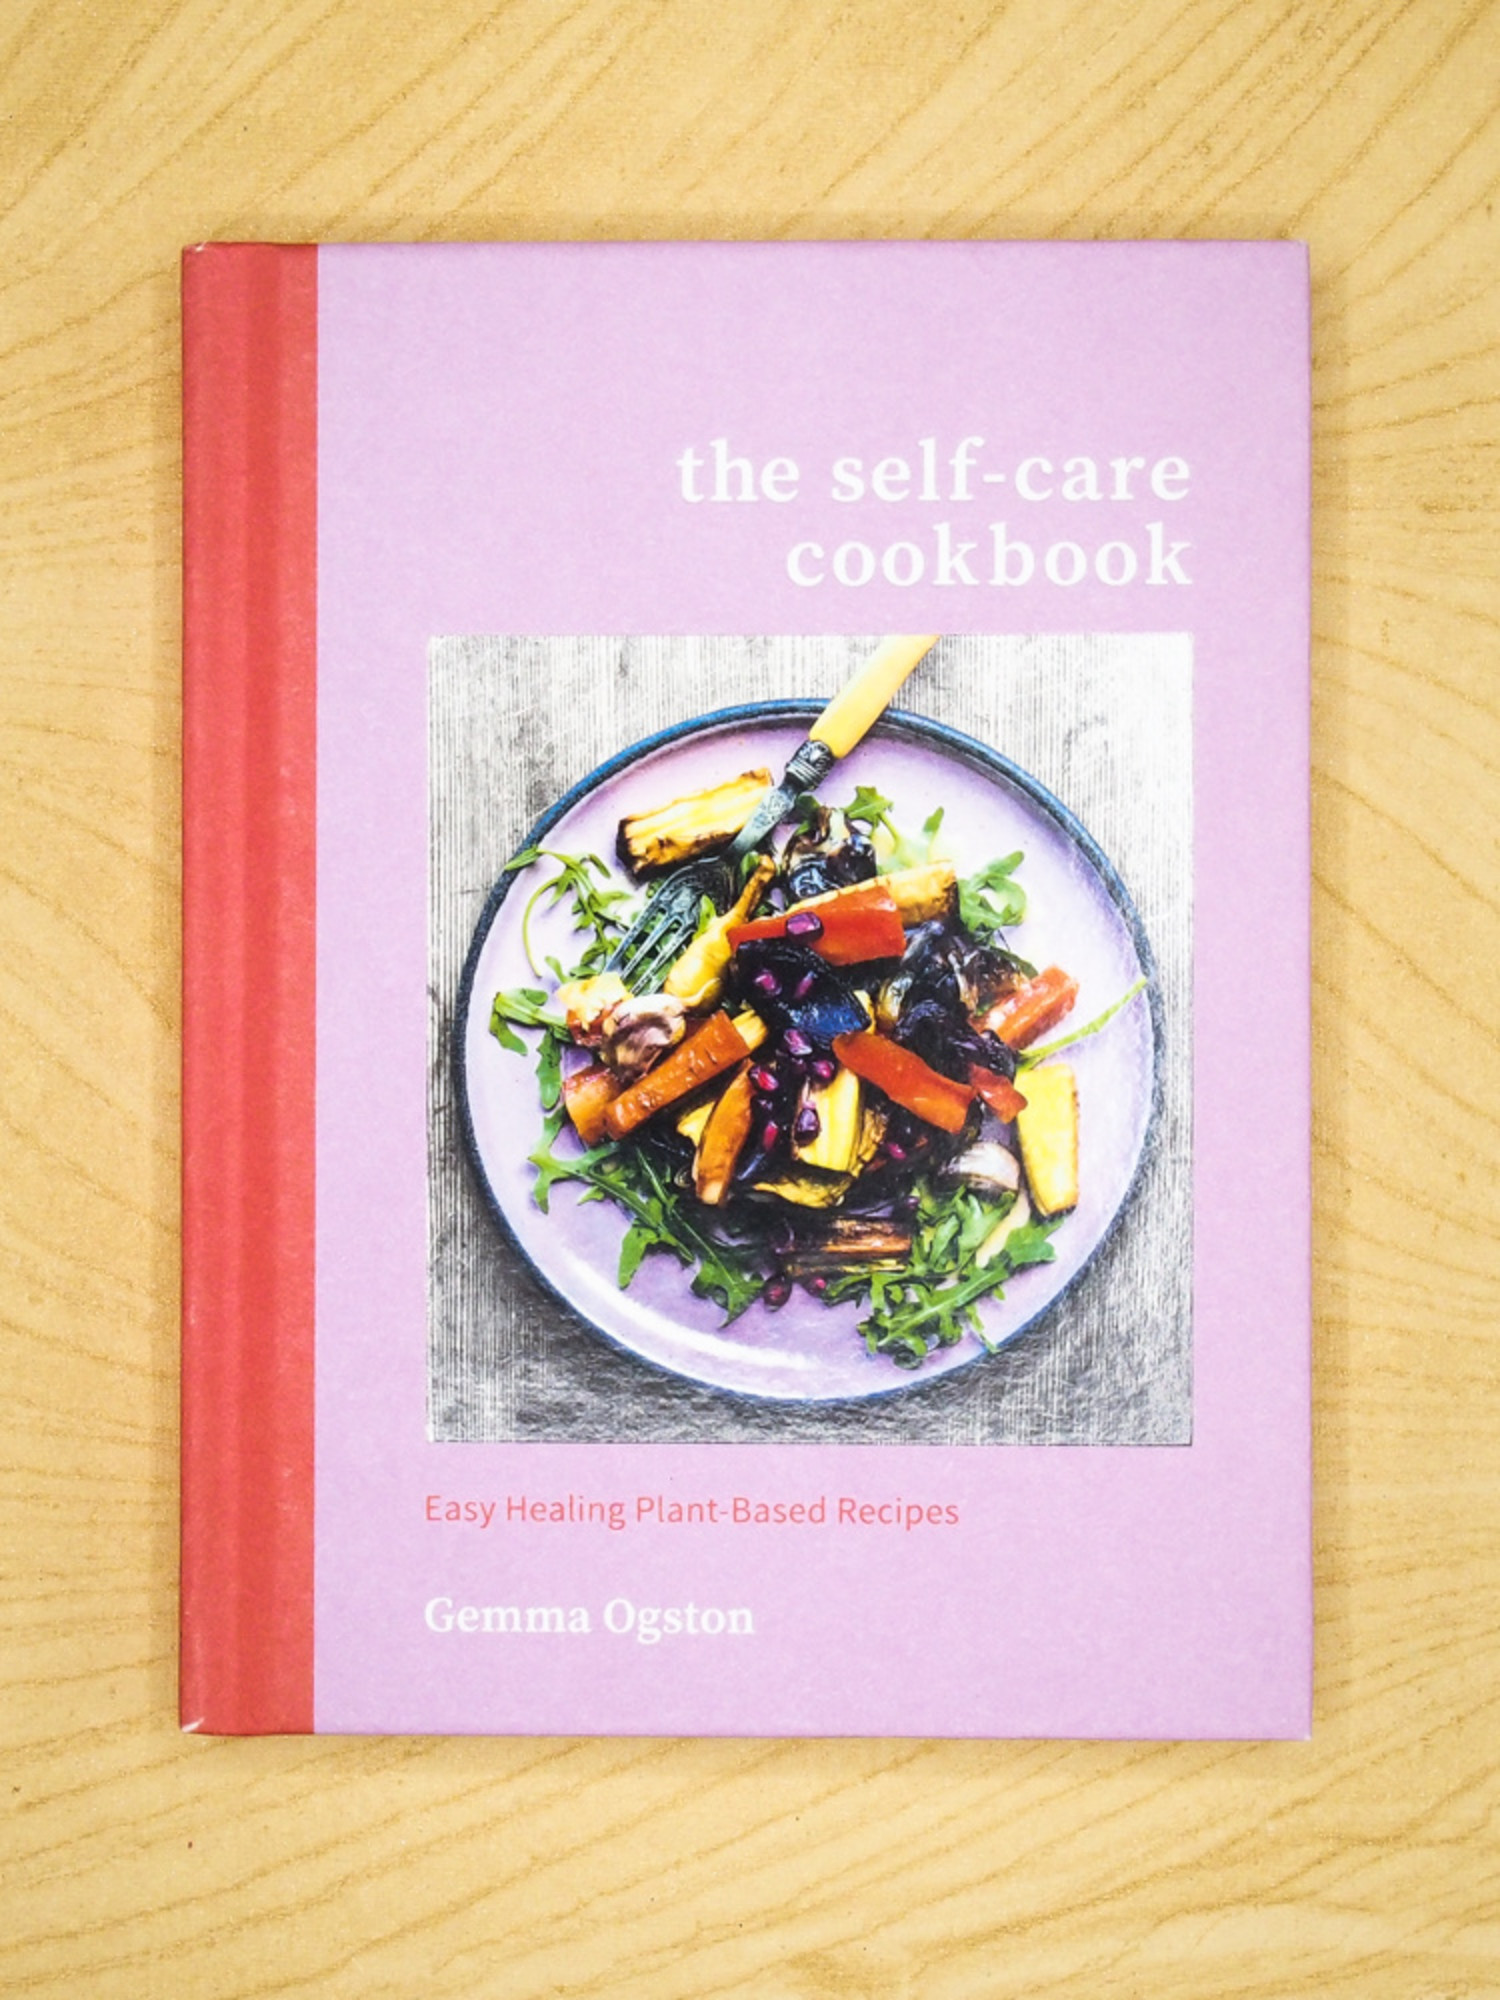 The Self-Care Cookbook by Gemma Ogston - The Herbivore Clothing Co. - The  Herbivore Clothing Company